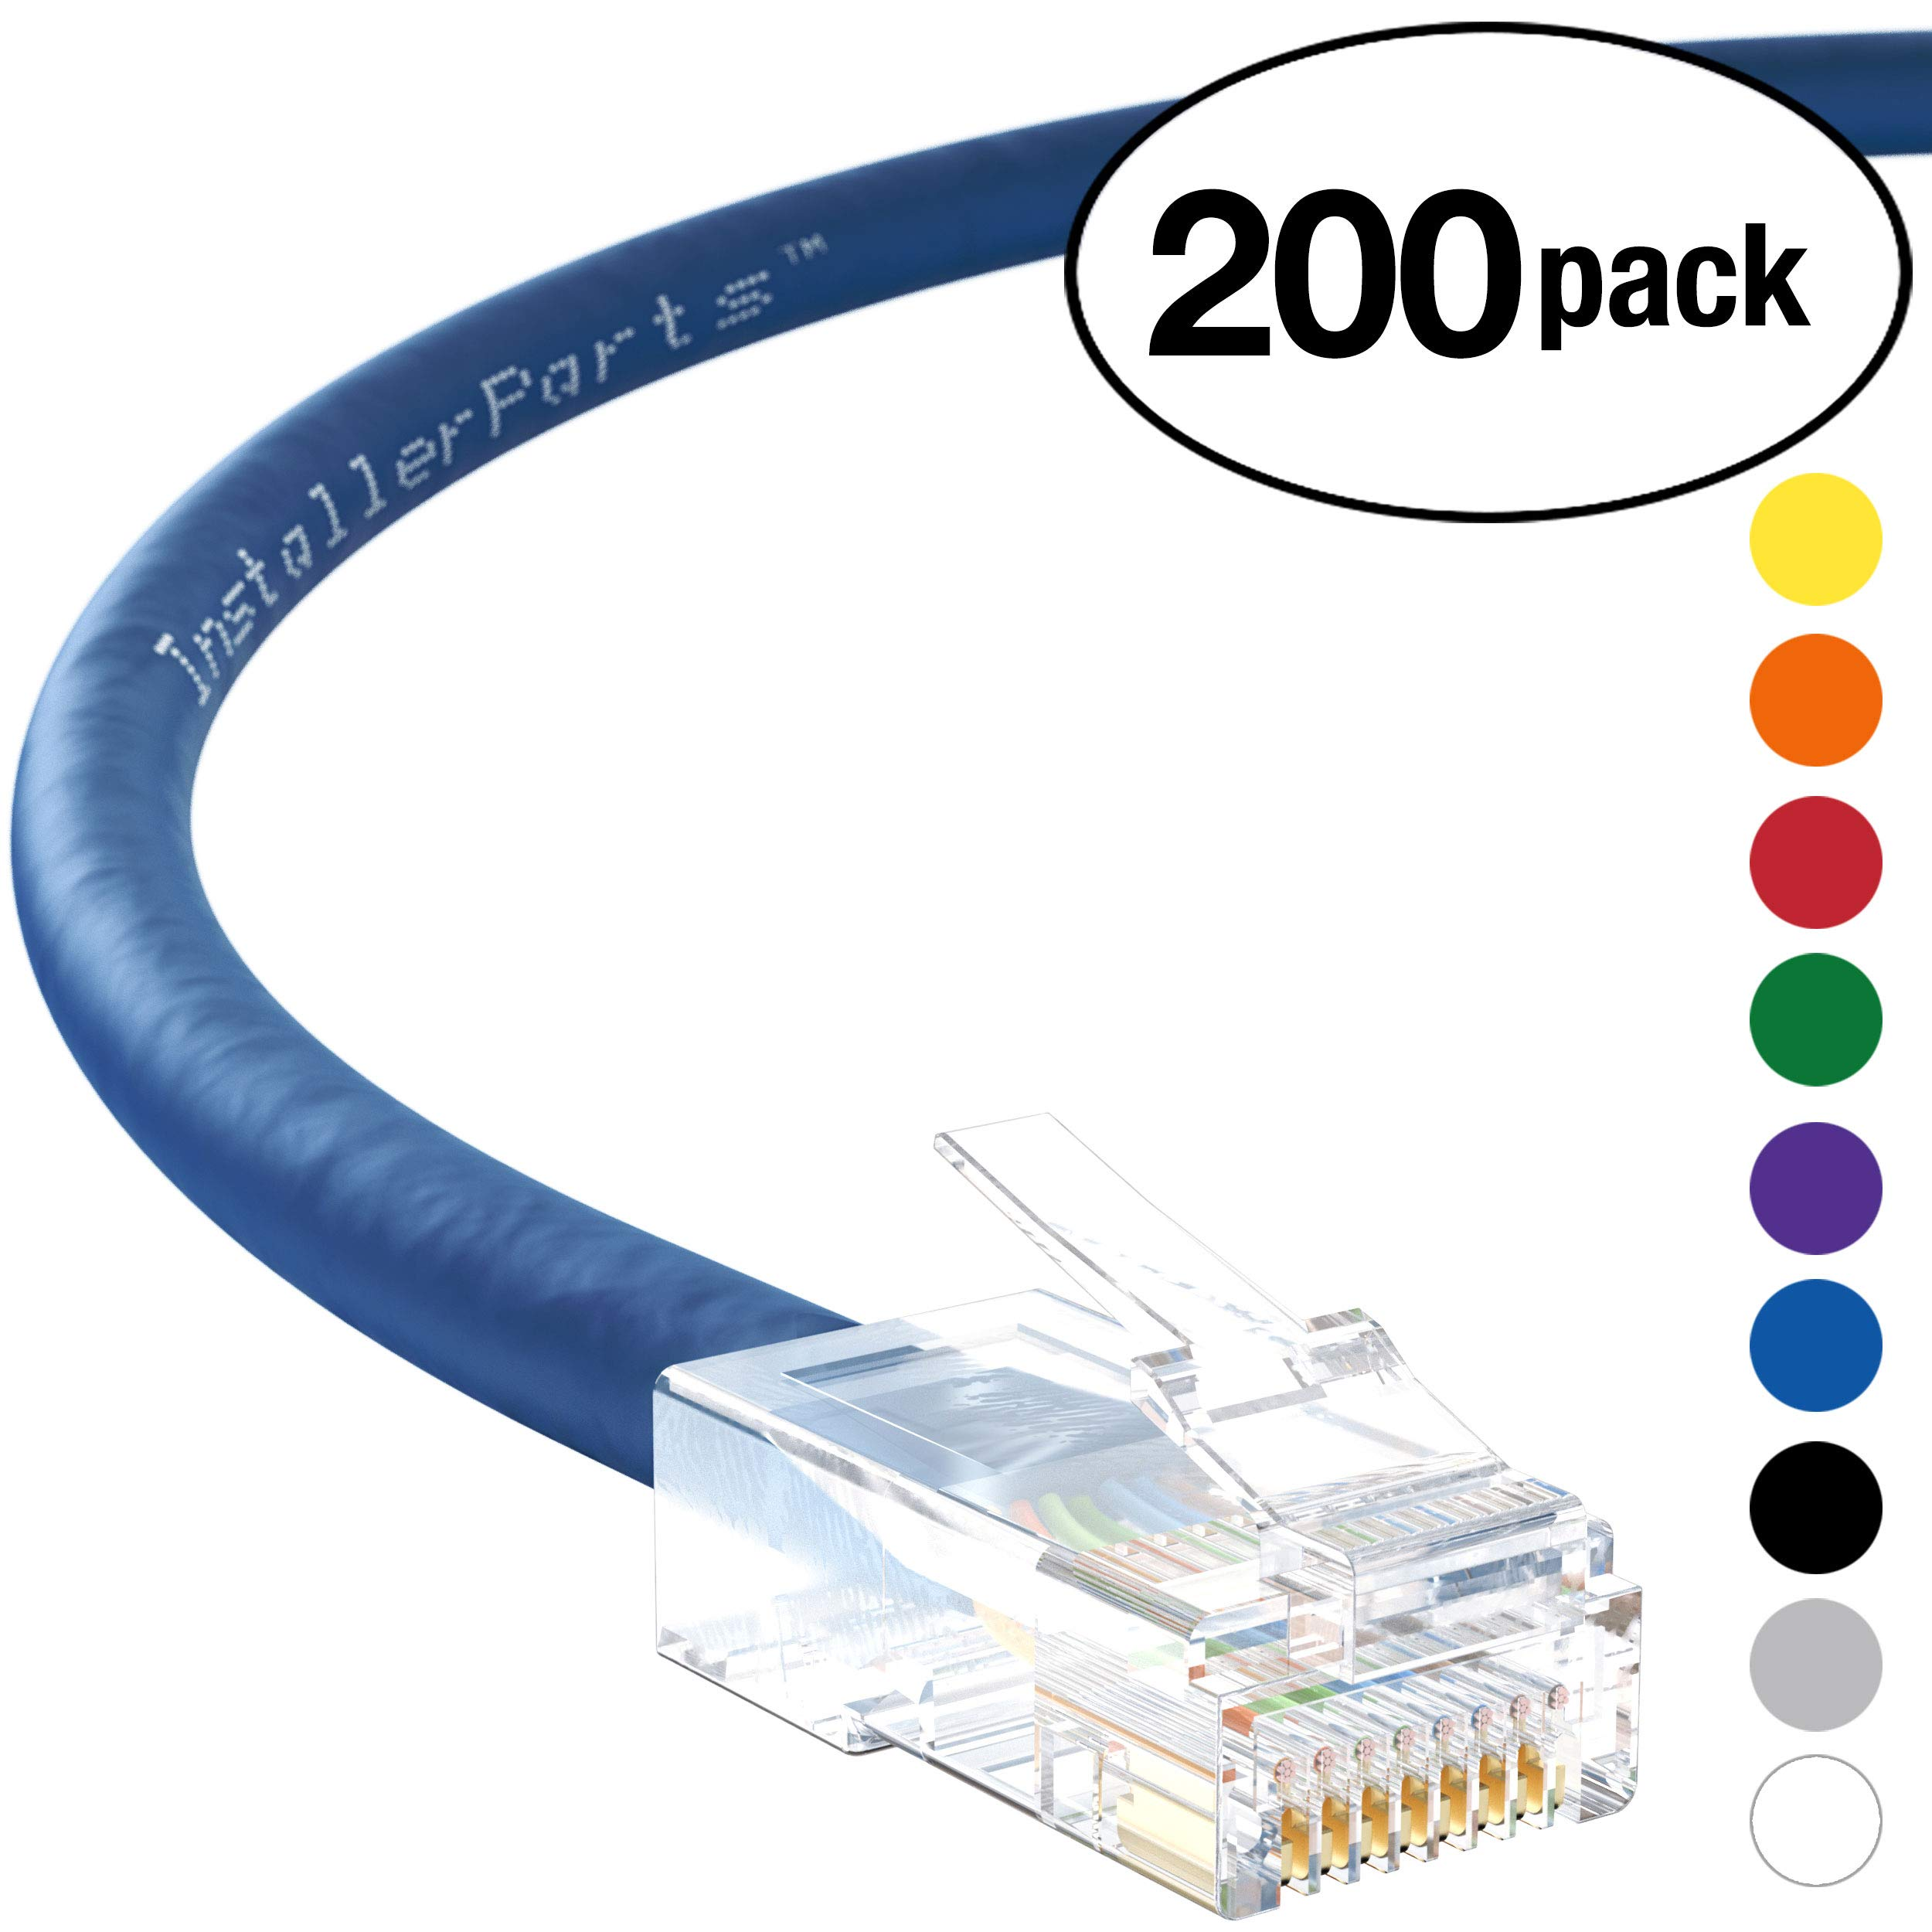 InstallerParts (200 Pack) Ethernet Cable CAT5E Cable UTP Non-Booted 5 FT - Blue - Professional Series - 1Gigabit/Sec Network/Internet Cable, 350MHZ by InstallerParts